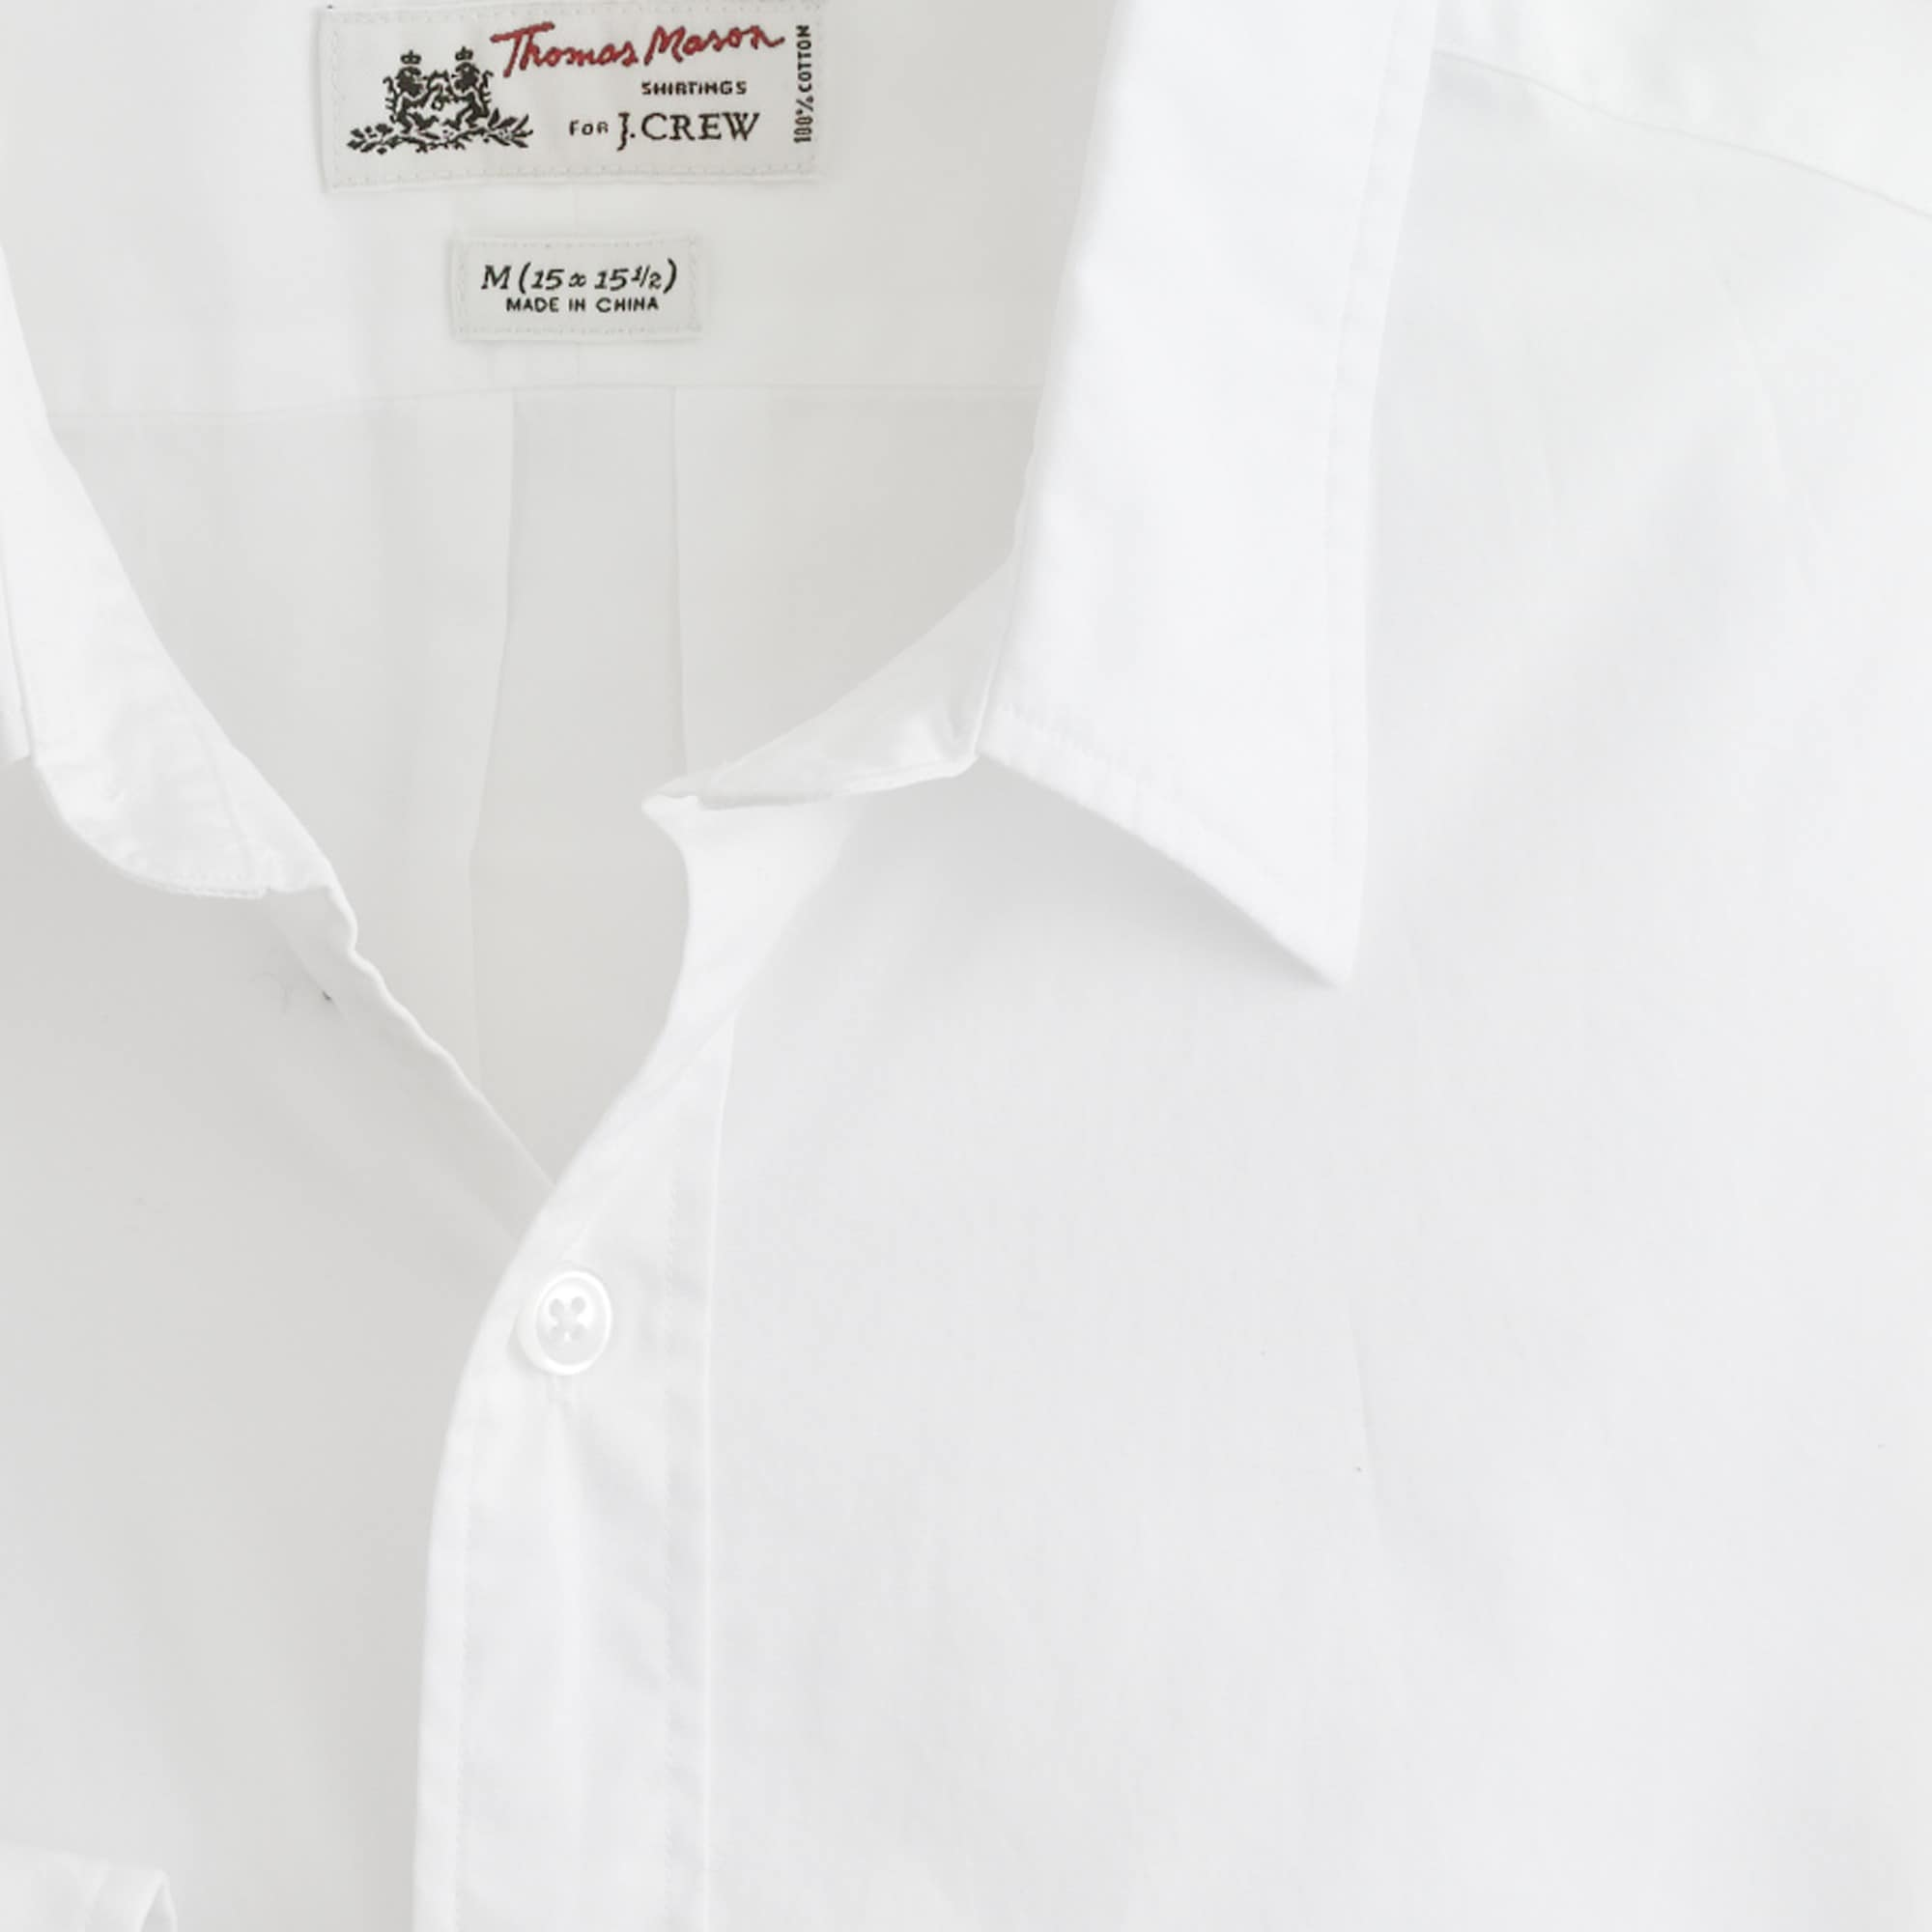 Thomas Mason® for J.Crew Ludlow Slim-fit shirt